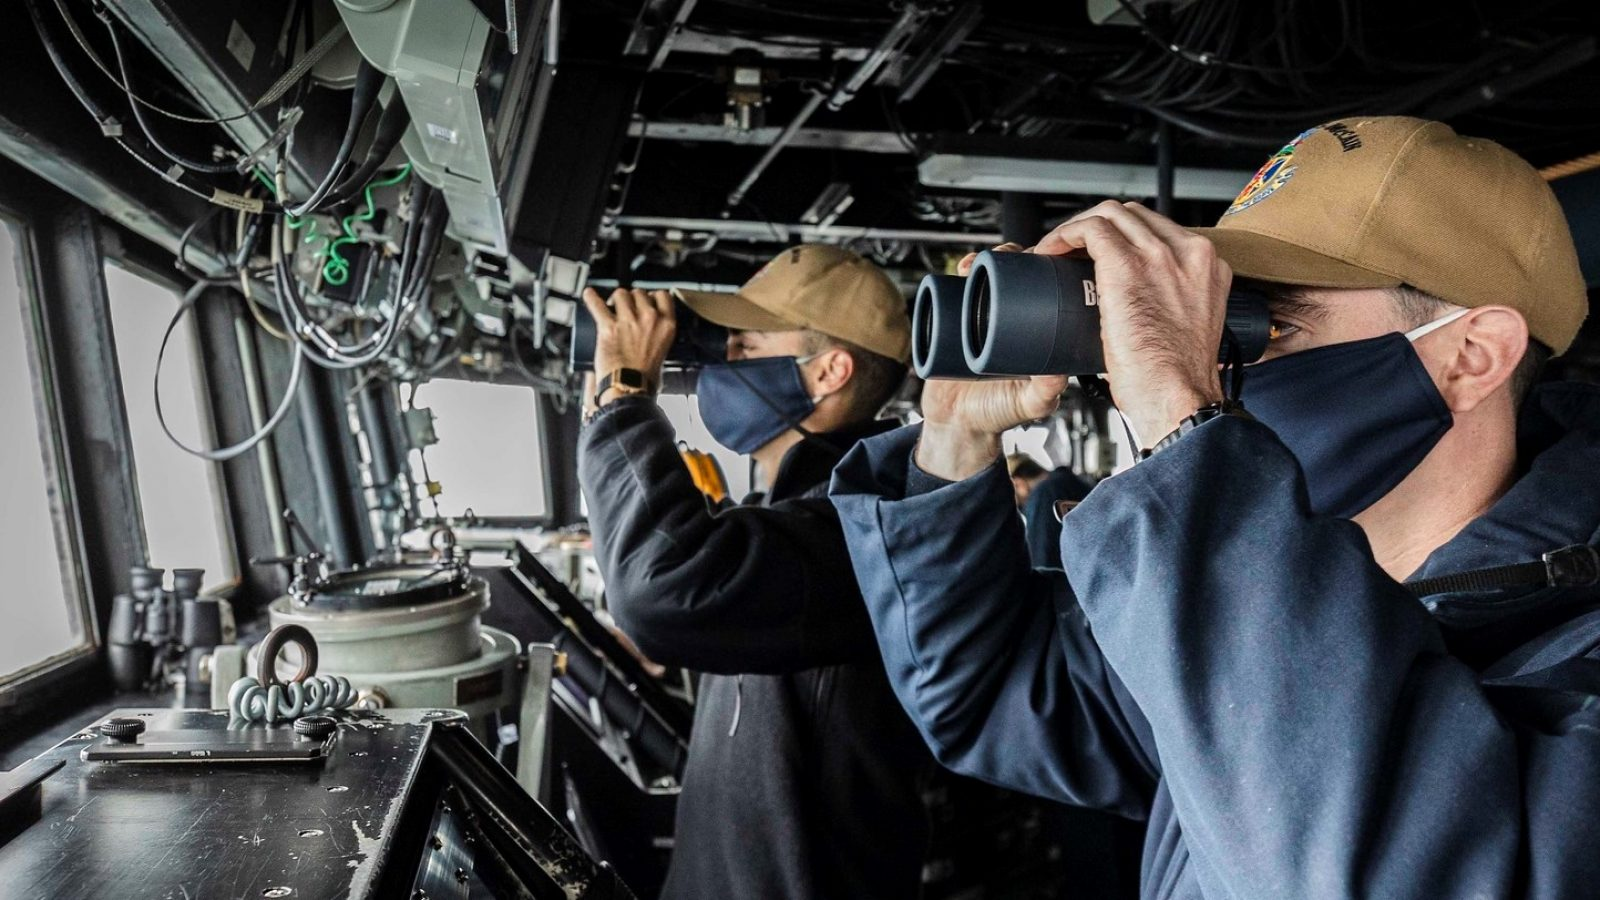 Two men peer through binoculars in the pilot house of a destroyer